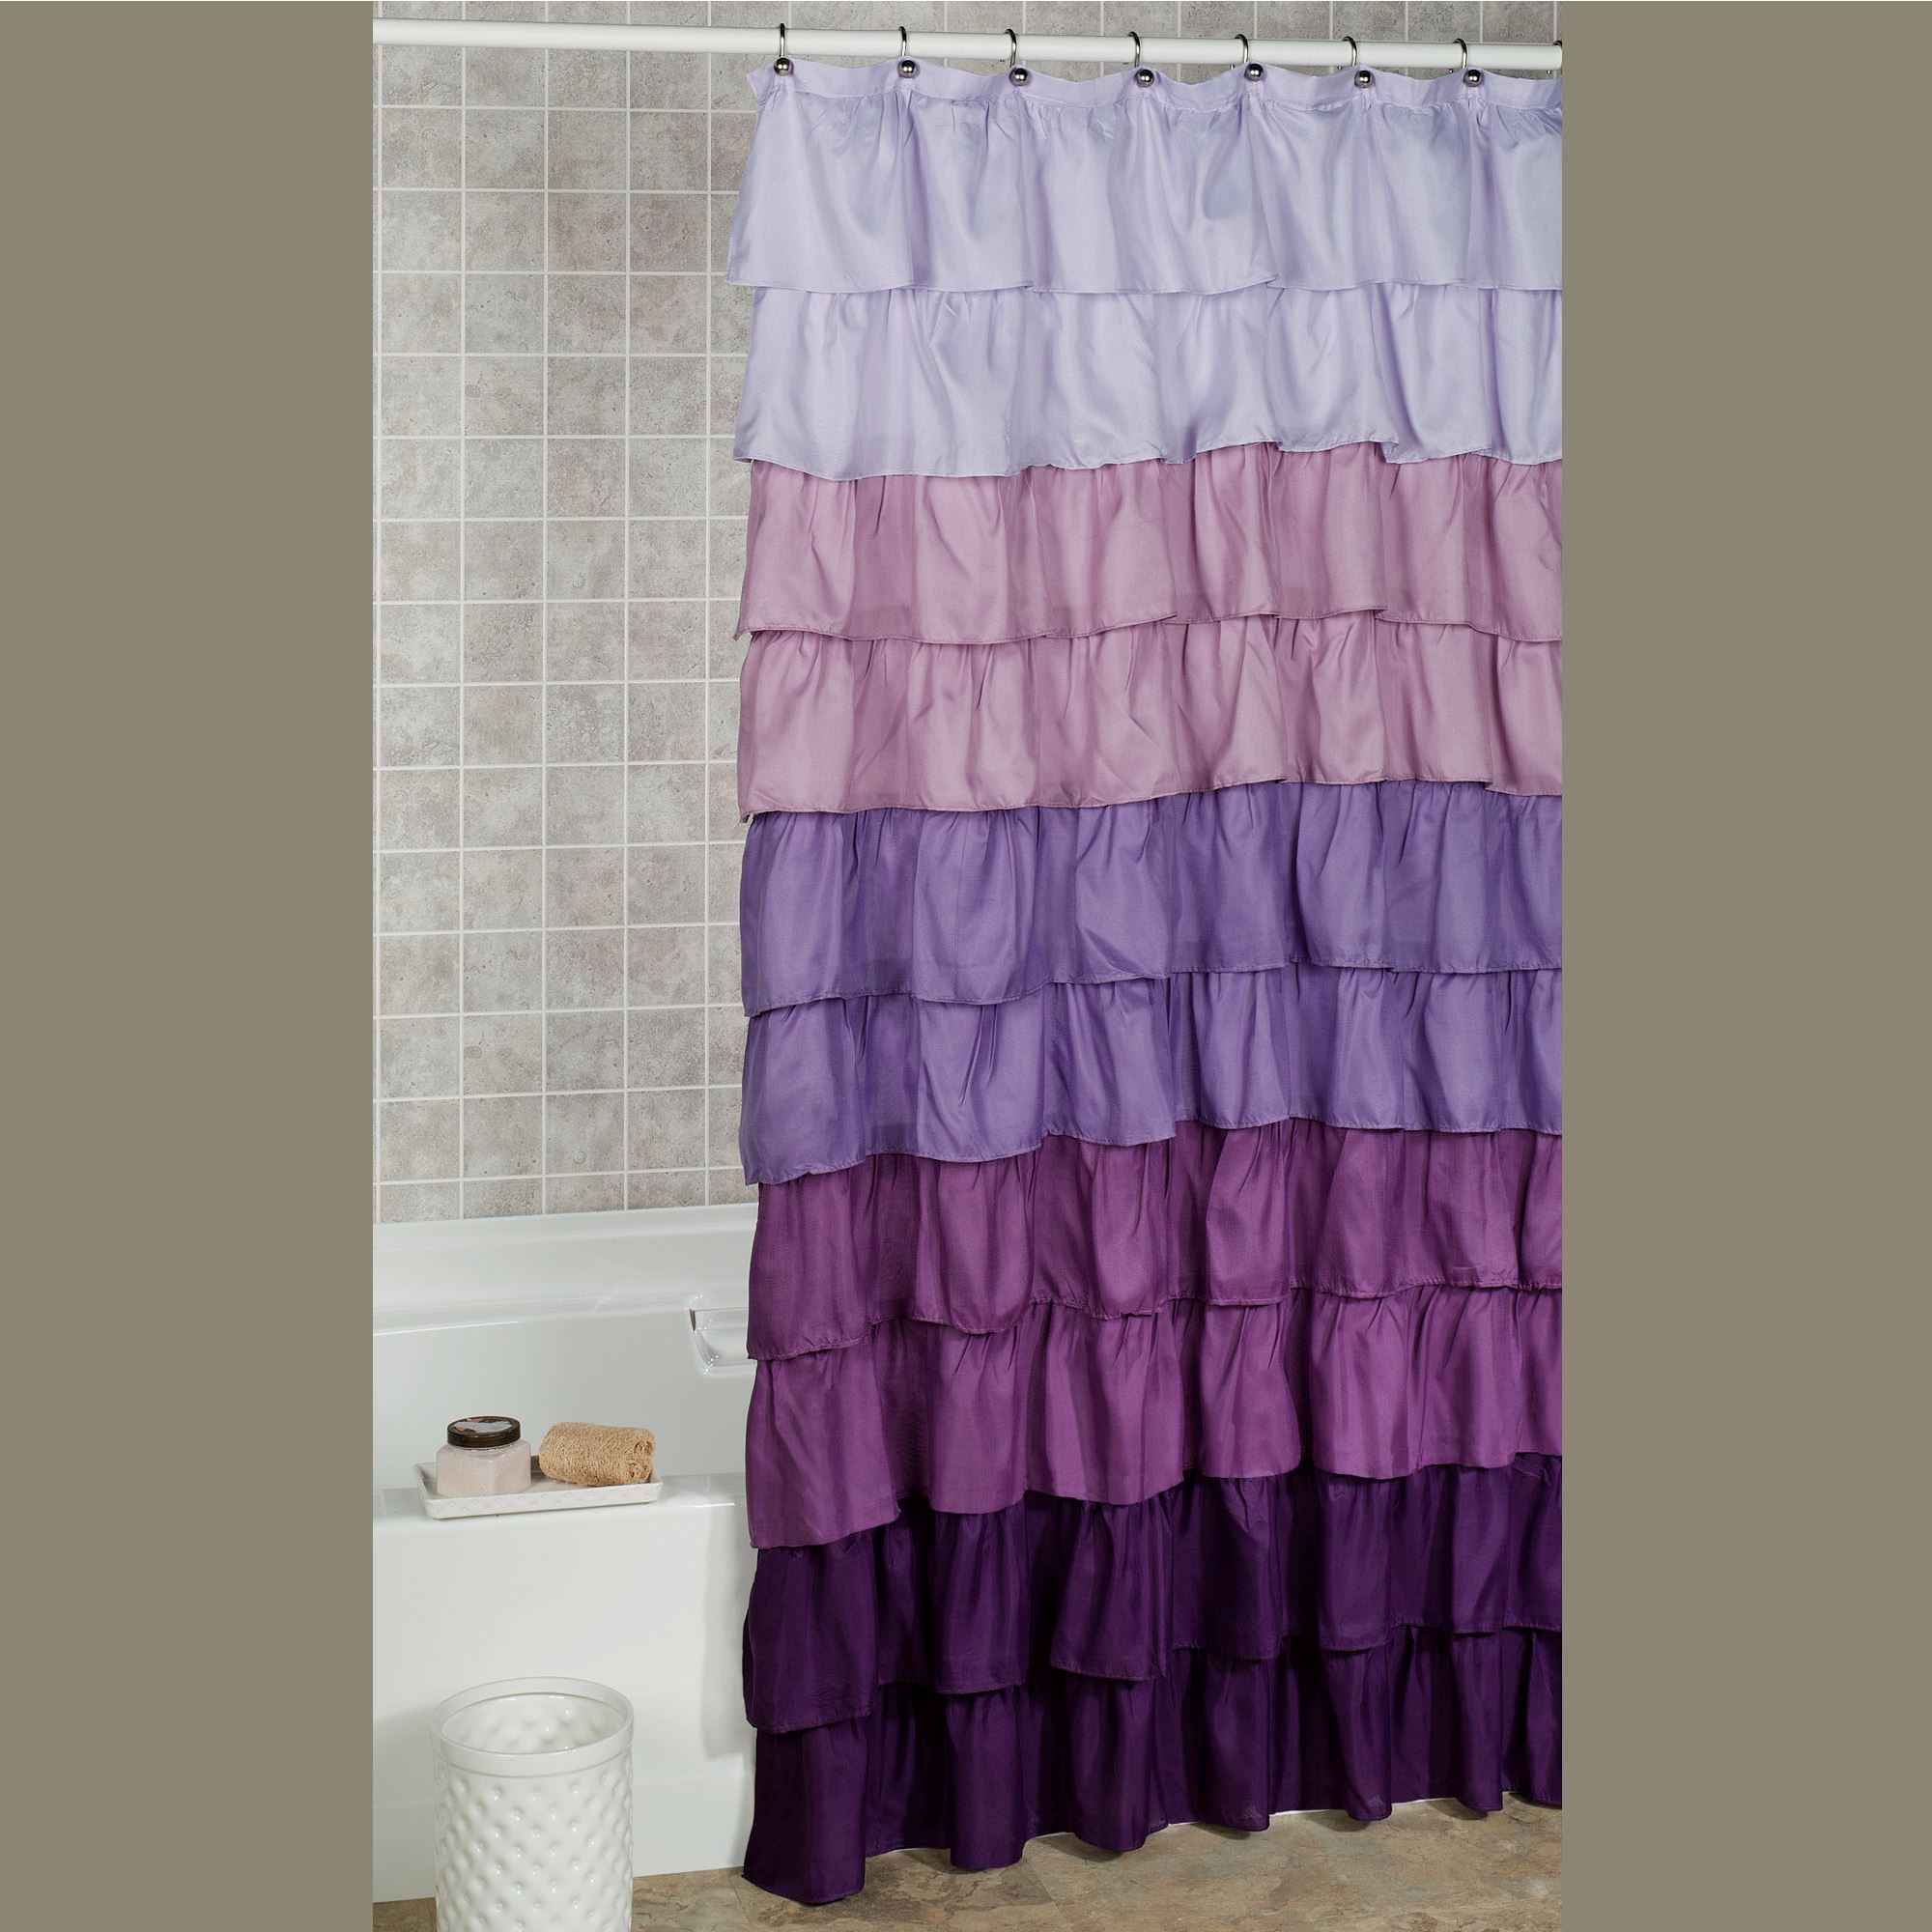 Maribella Lavender Ombre Ruffled Shower Curtain